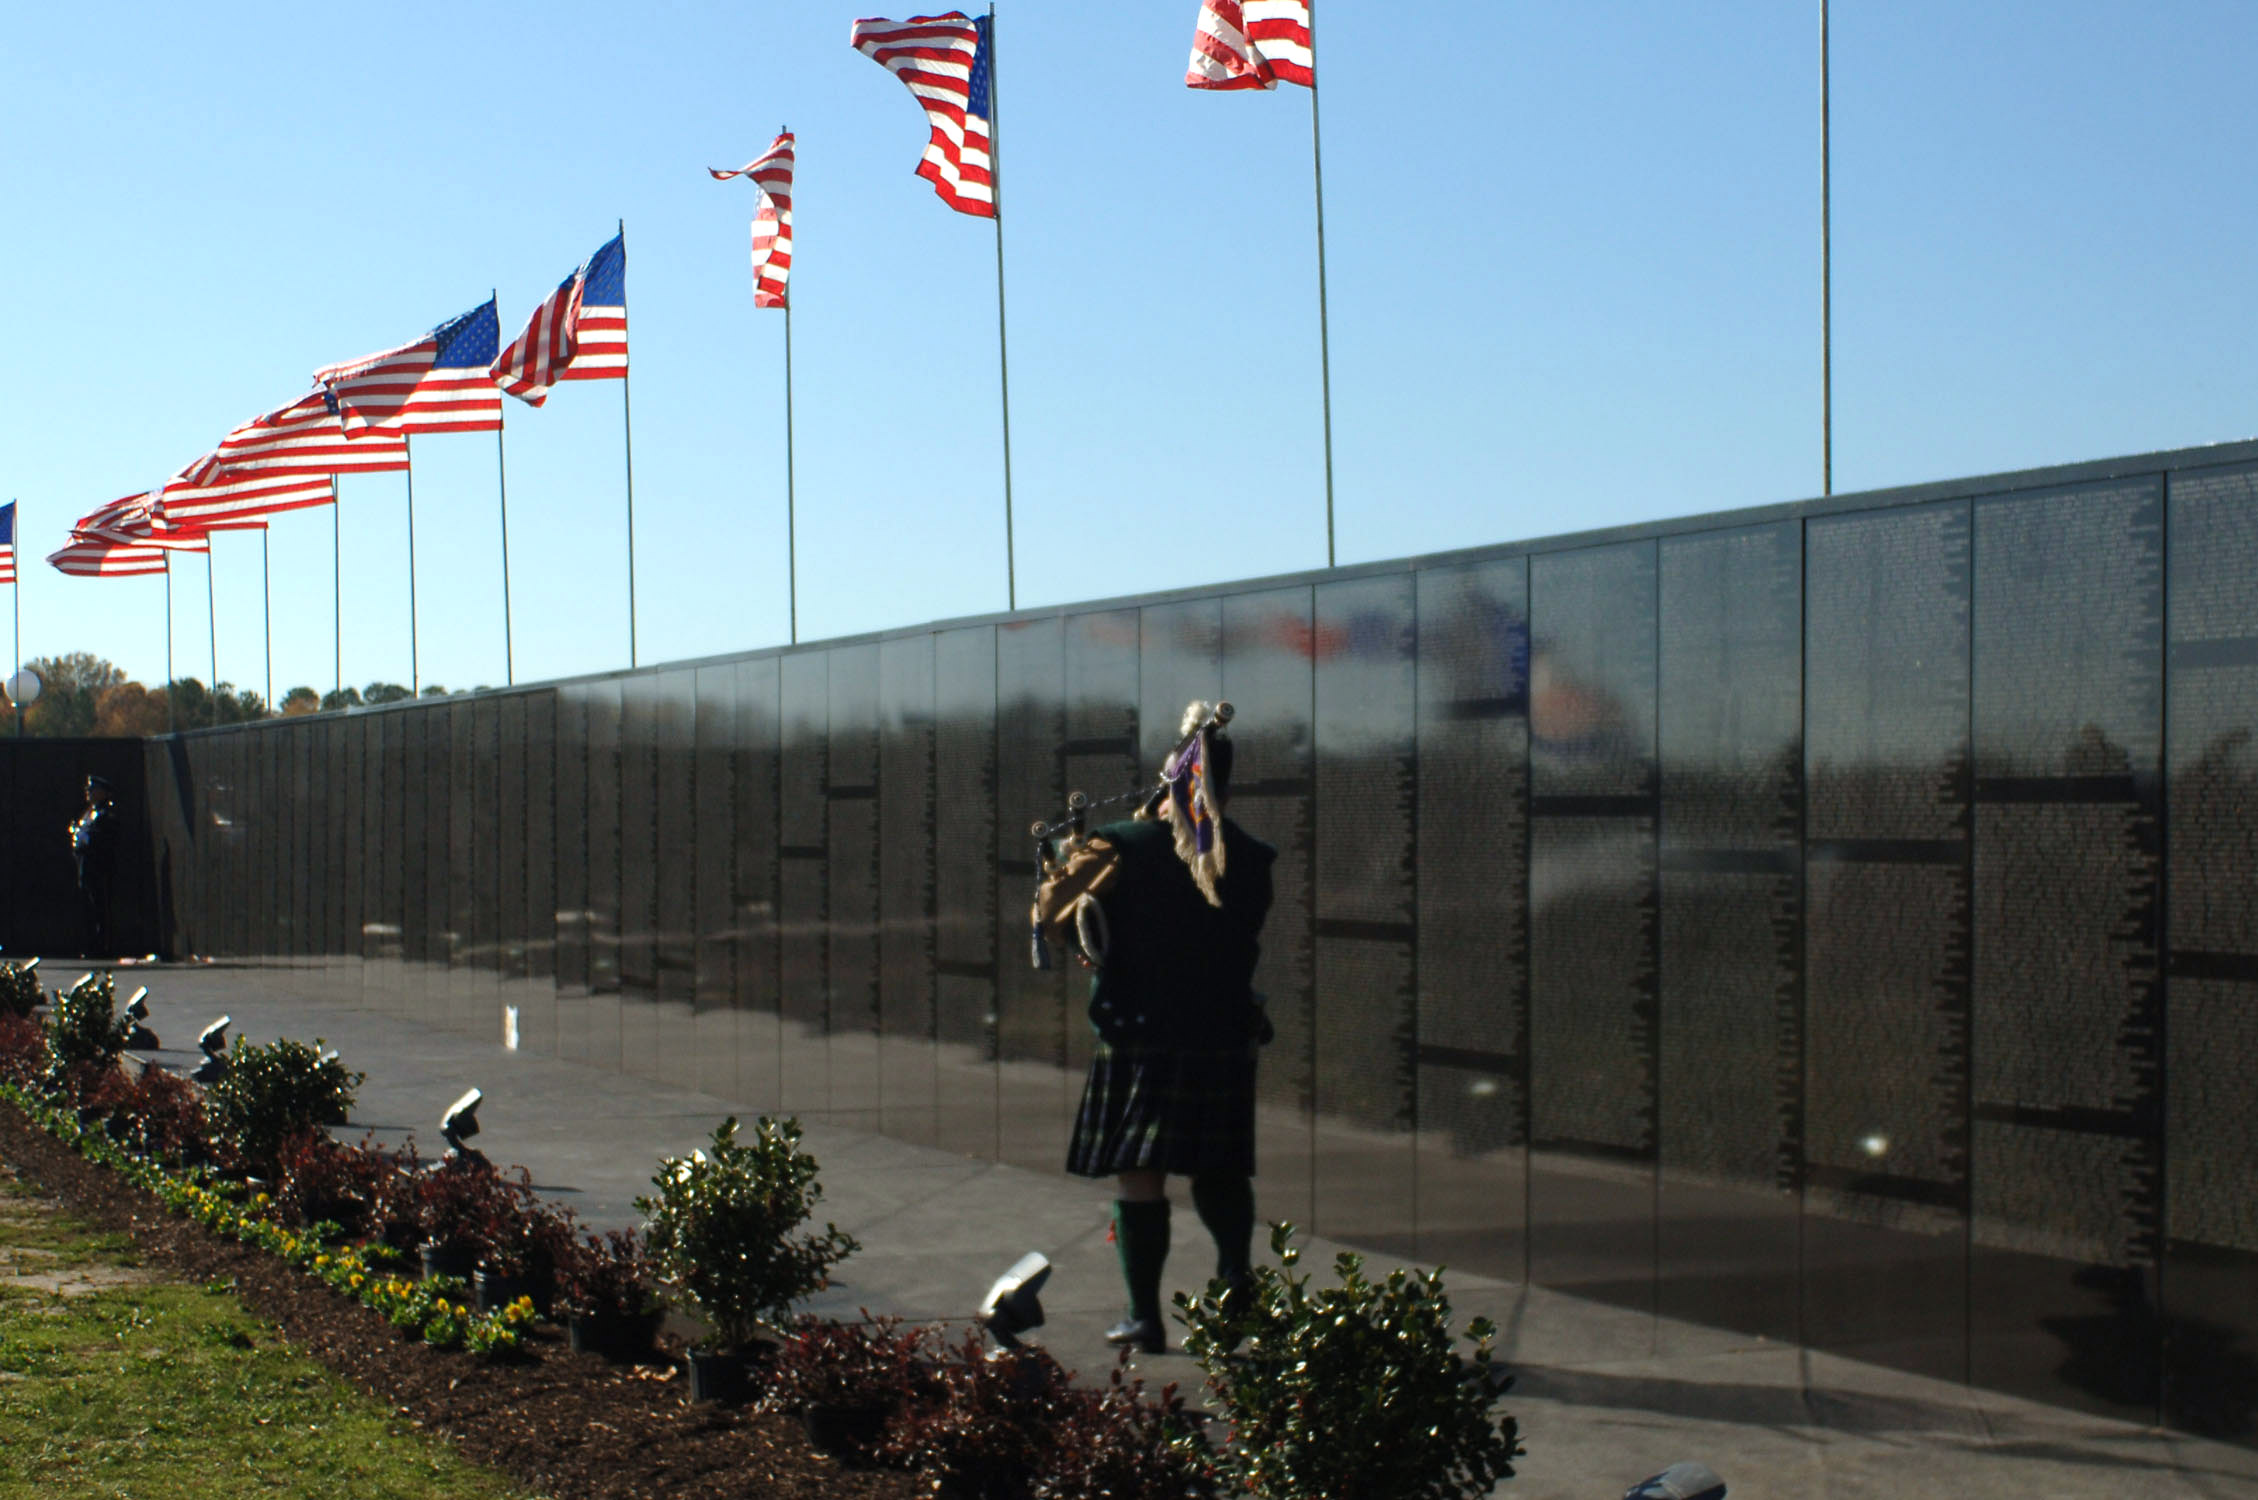 Vietnam Wall : Vietnam Veterans Memorial Wall